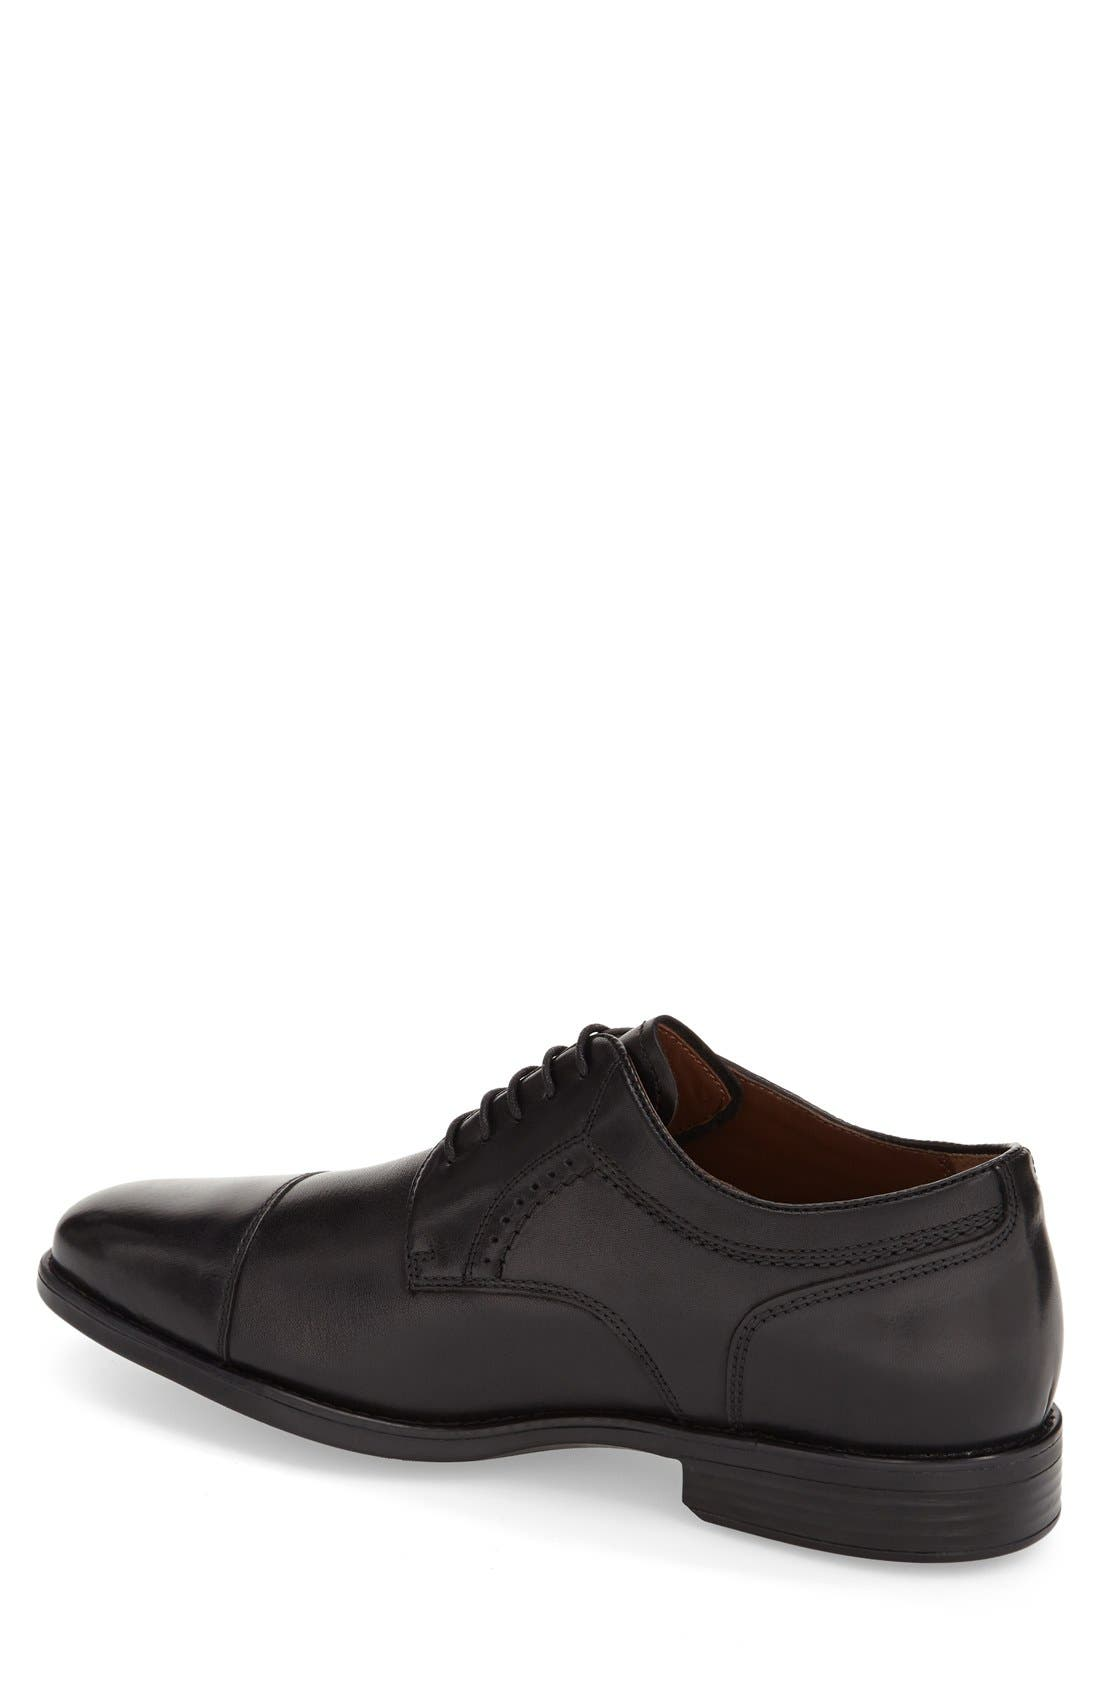 JOHNSTON & MURPHY, 'Branning' Waterproof Cap Toe Derby, Alternate thumbnail 2, color, BLACK